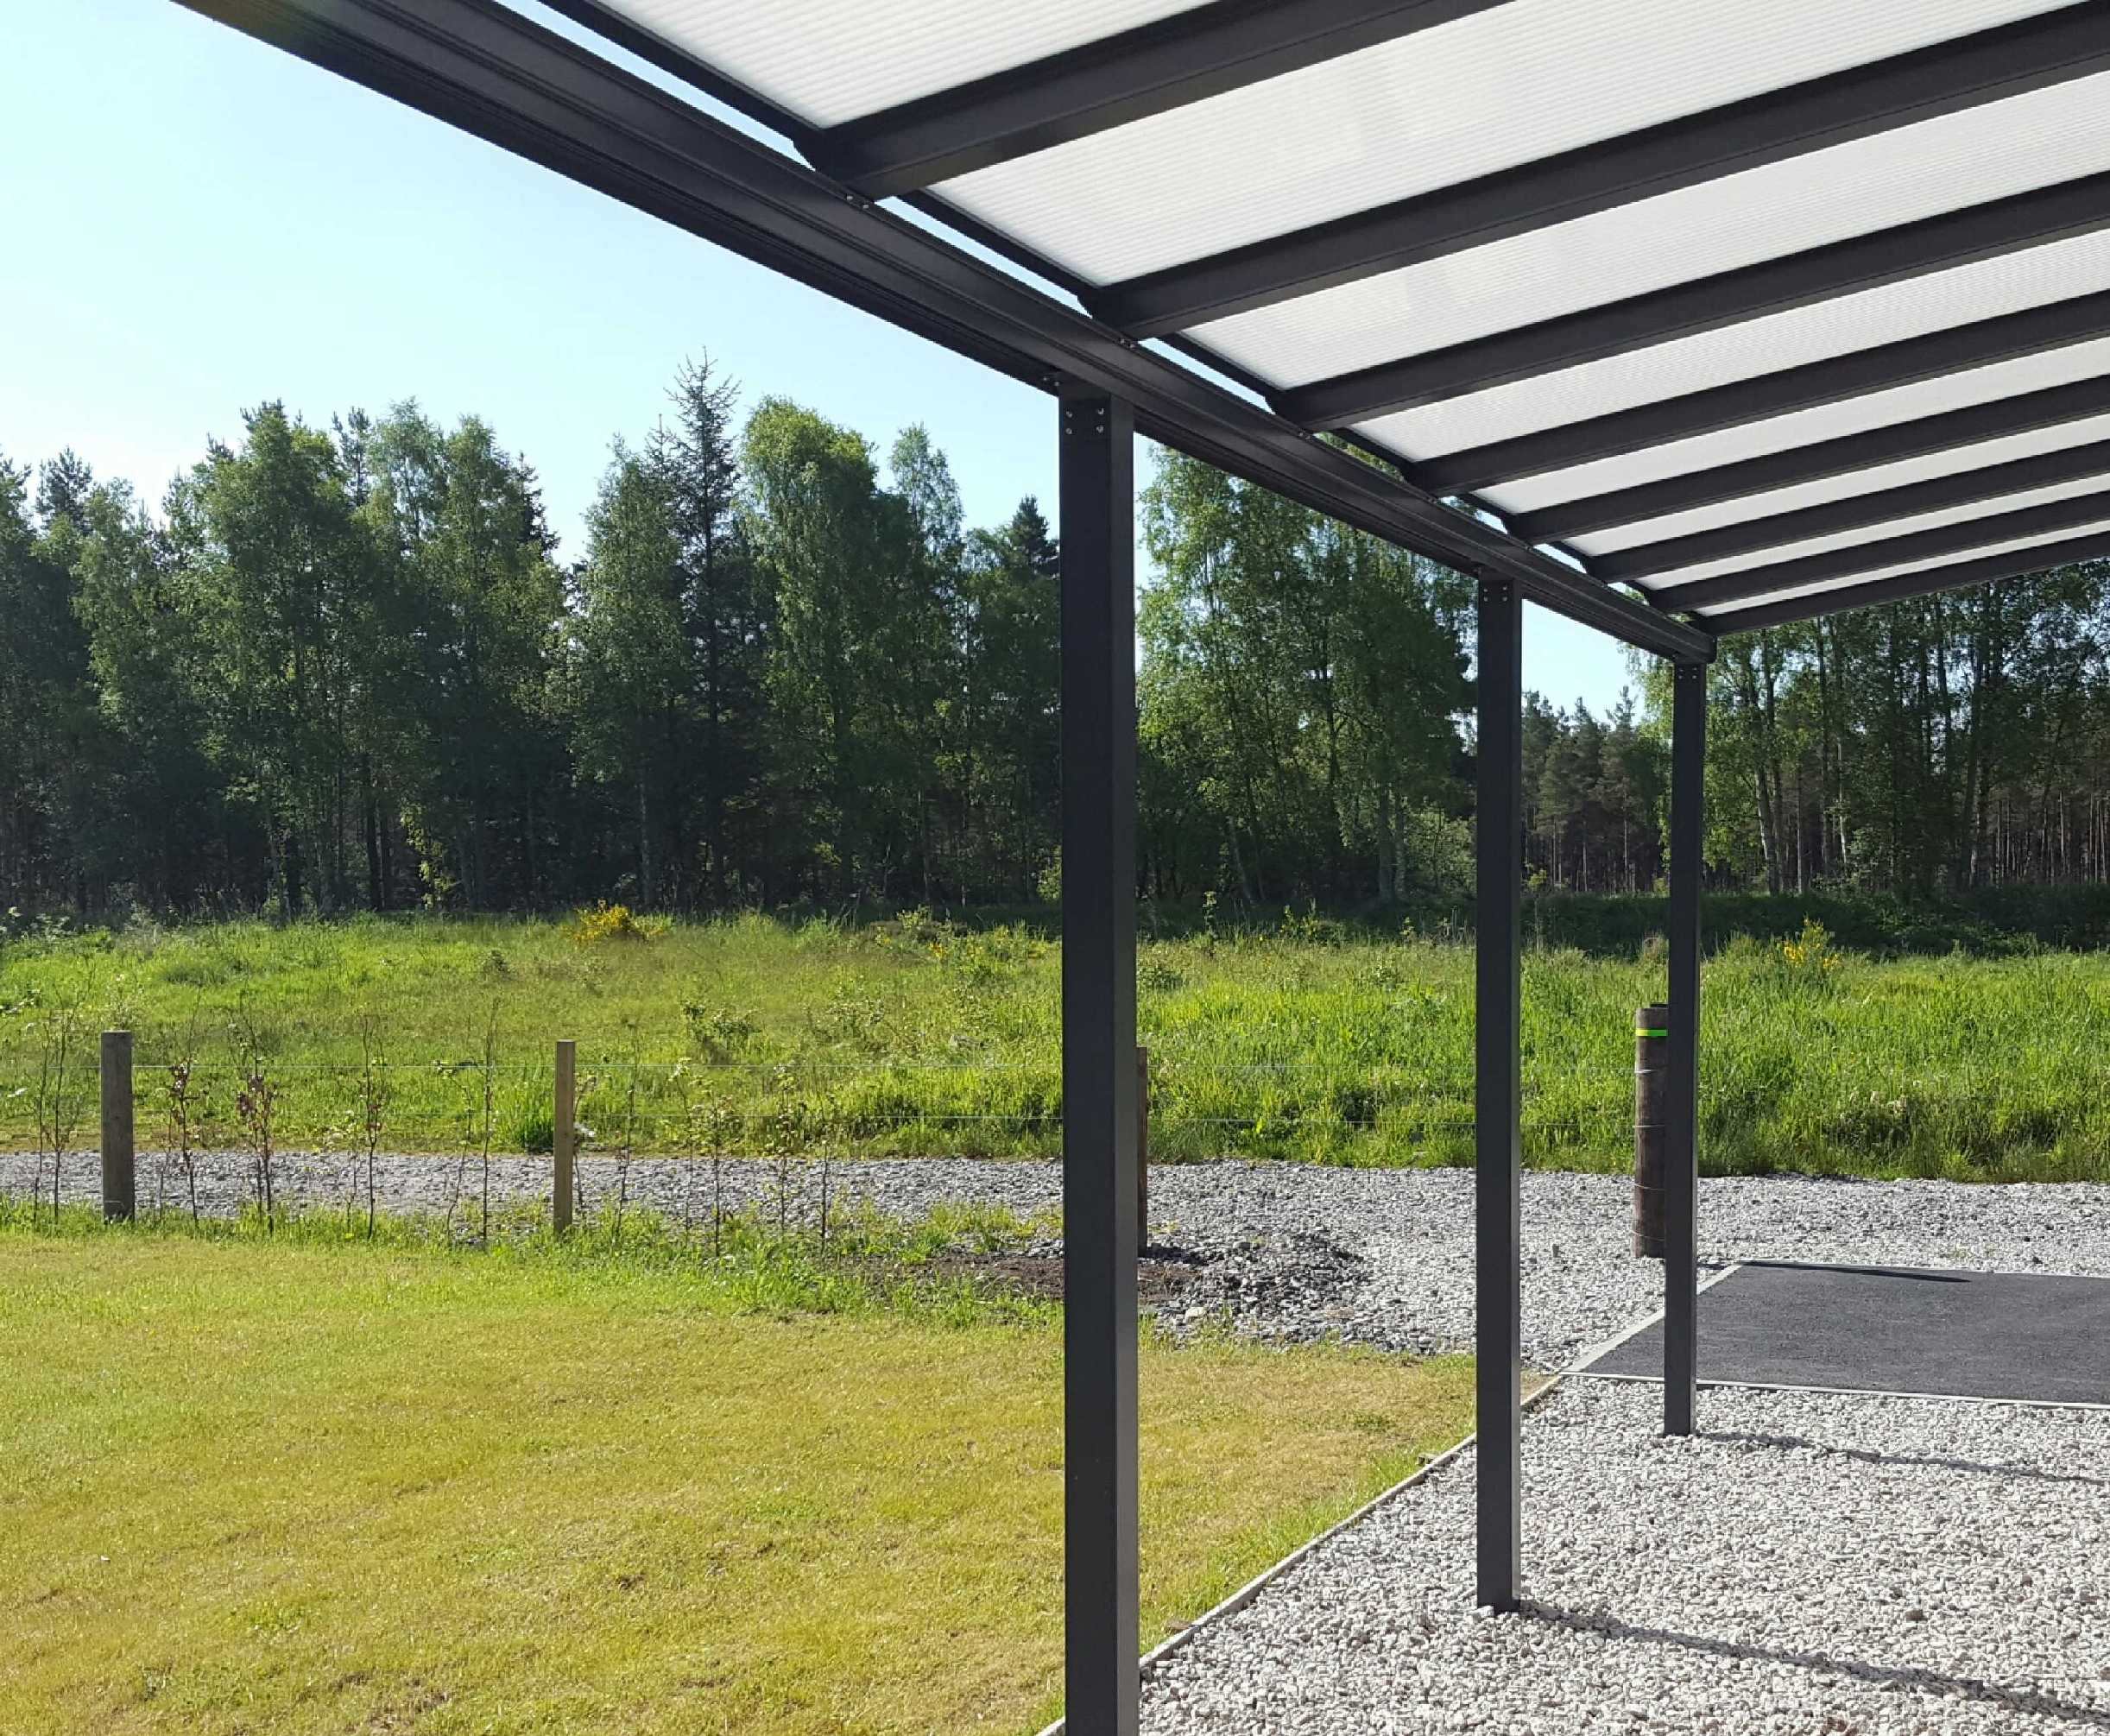 Omega Smart Lean-To Canopy, Anthracite Grey, UNGLAZED for 6mm Glazing - 7.7m (W) x 3.0m (P), (4) Supporting Posts